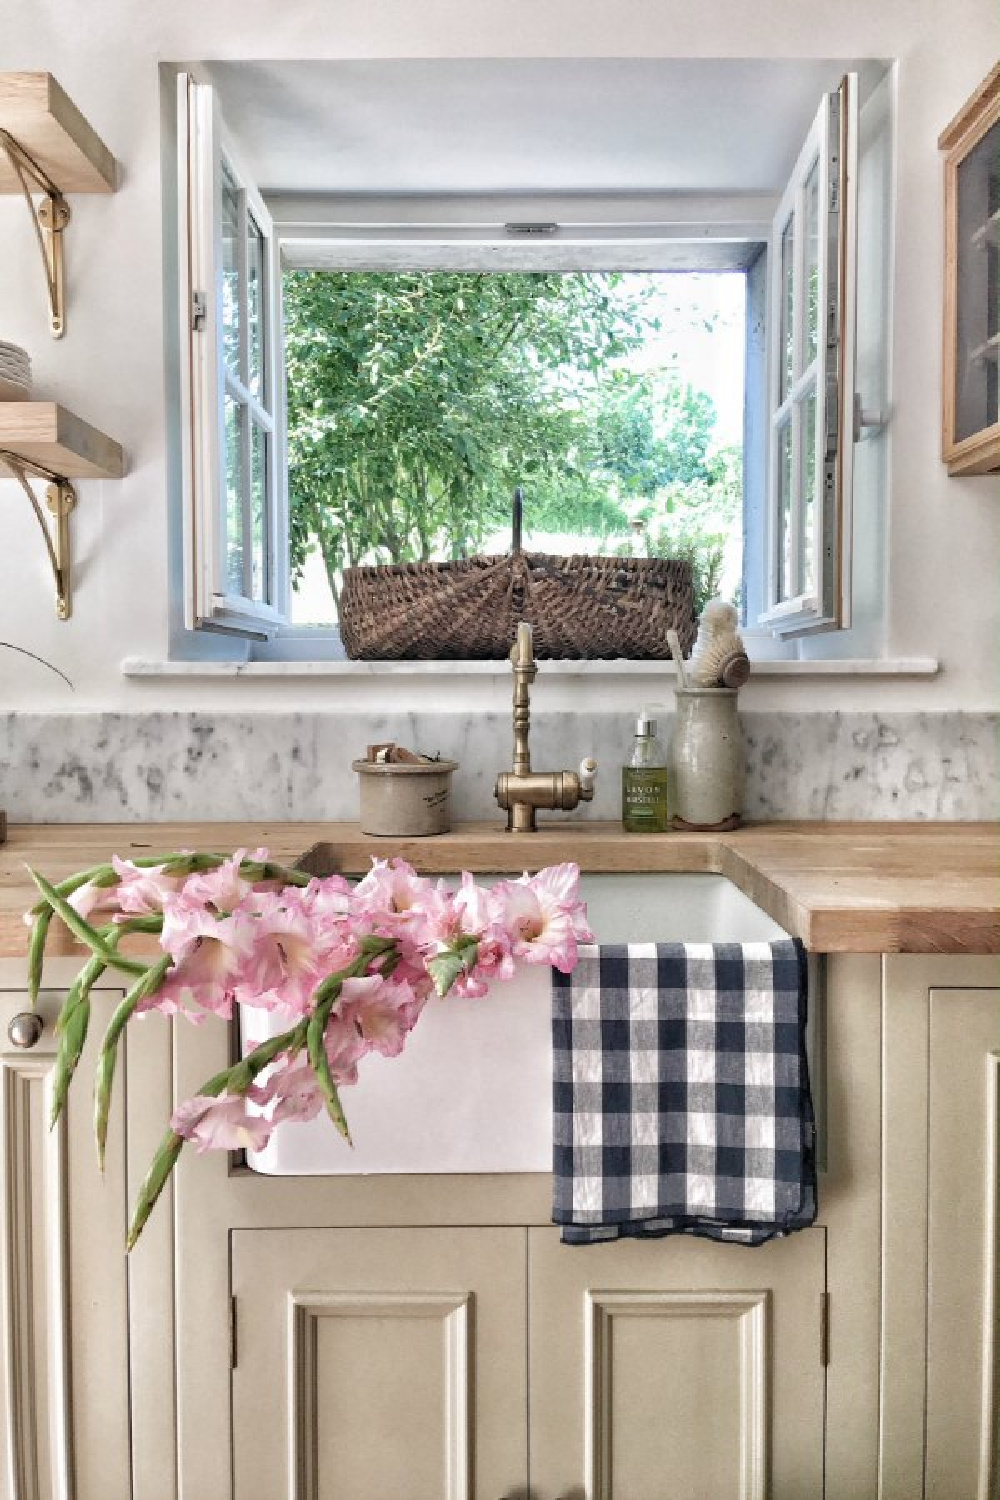 Charming French farmhouse kitchen with farm sink, checkered linens, and French baskets. A wood countertop tops putty colored cabinets. #vivietmargot #frenchkitchen #farmhousekitchen #farmsink #rusticdecor